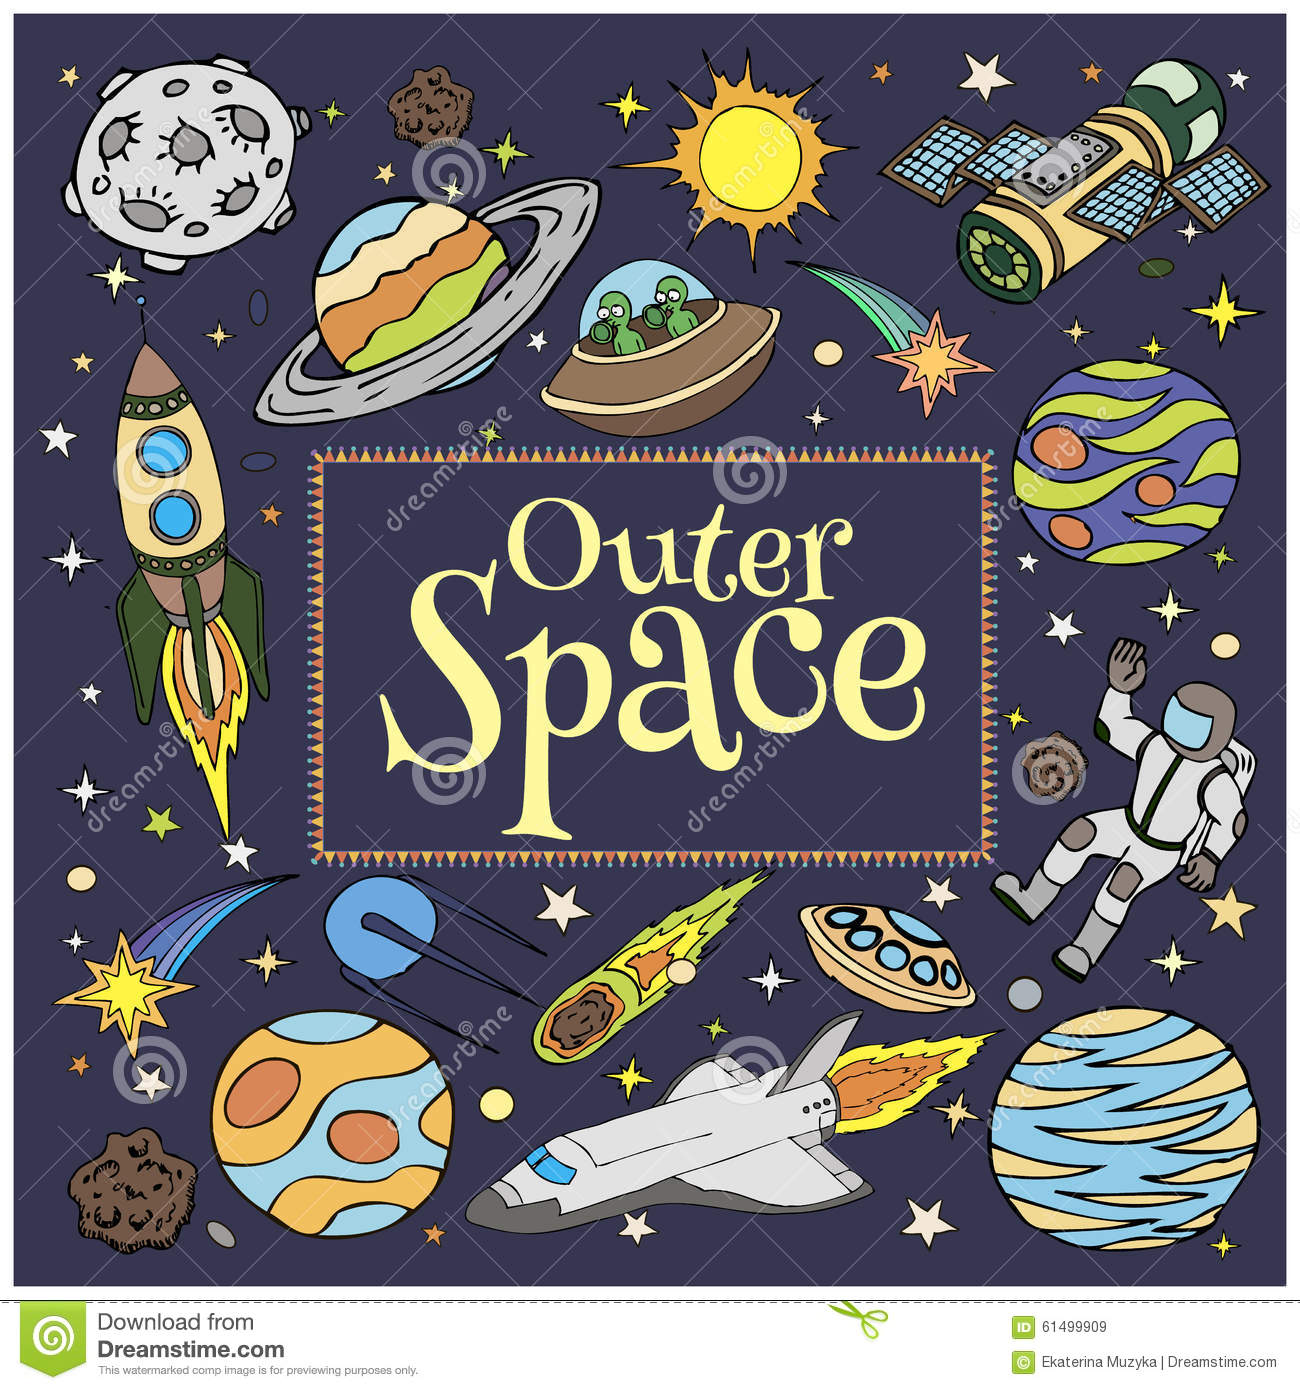 Outer space doodles symbols and design elements stock for Outer space elements